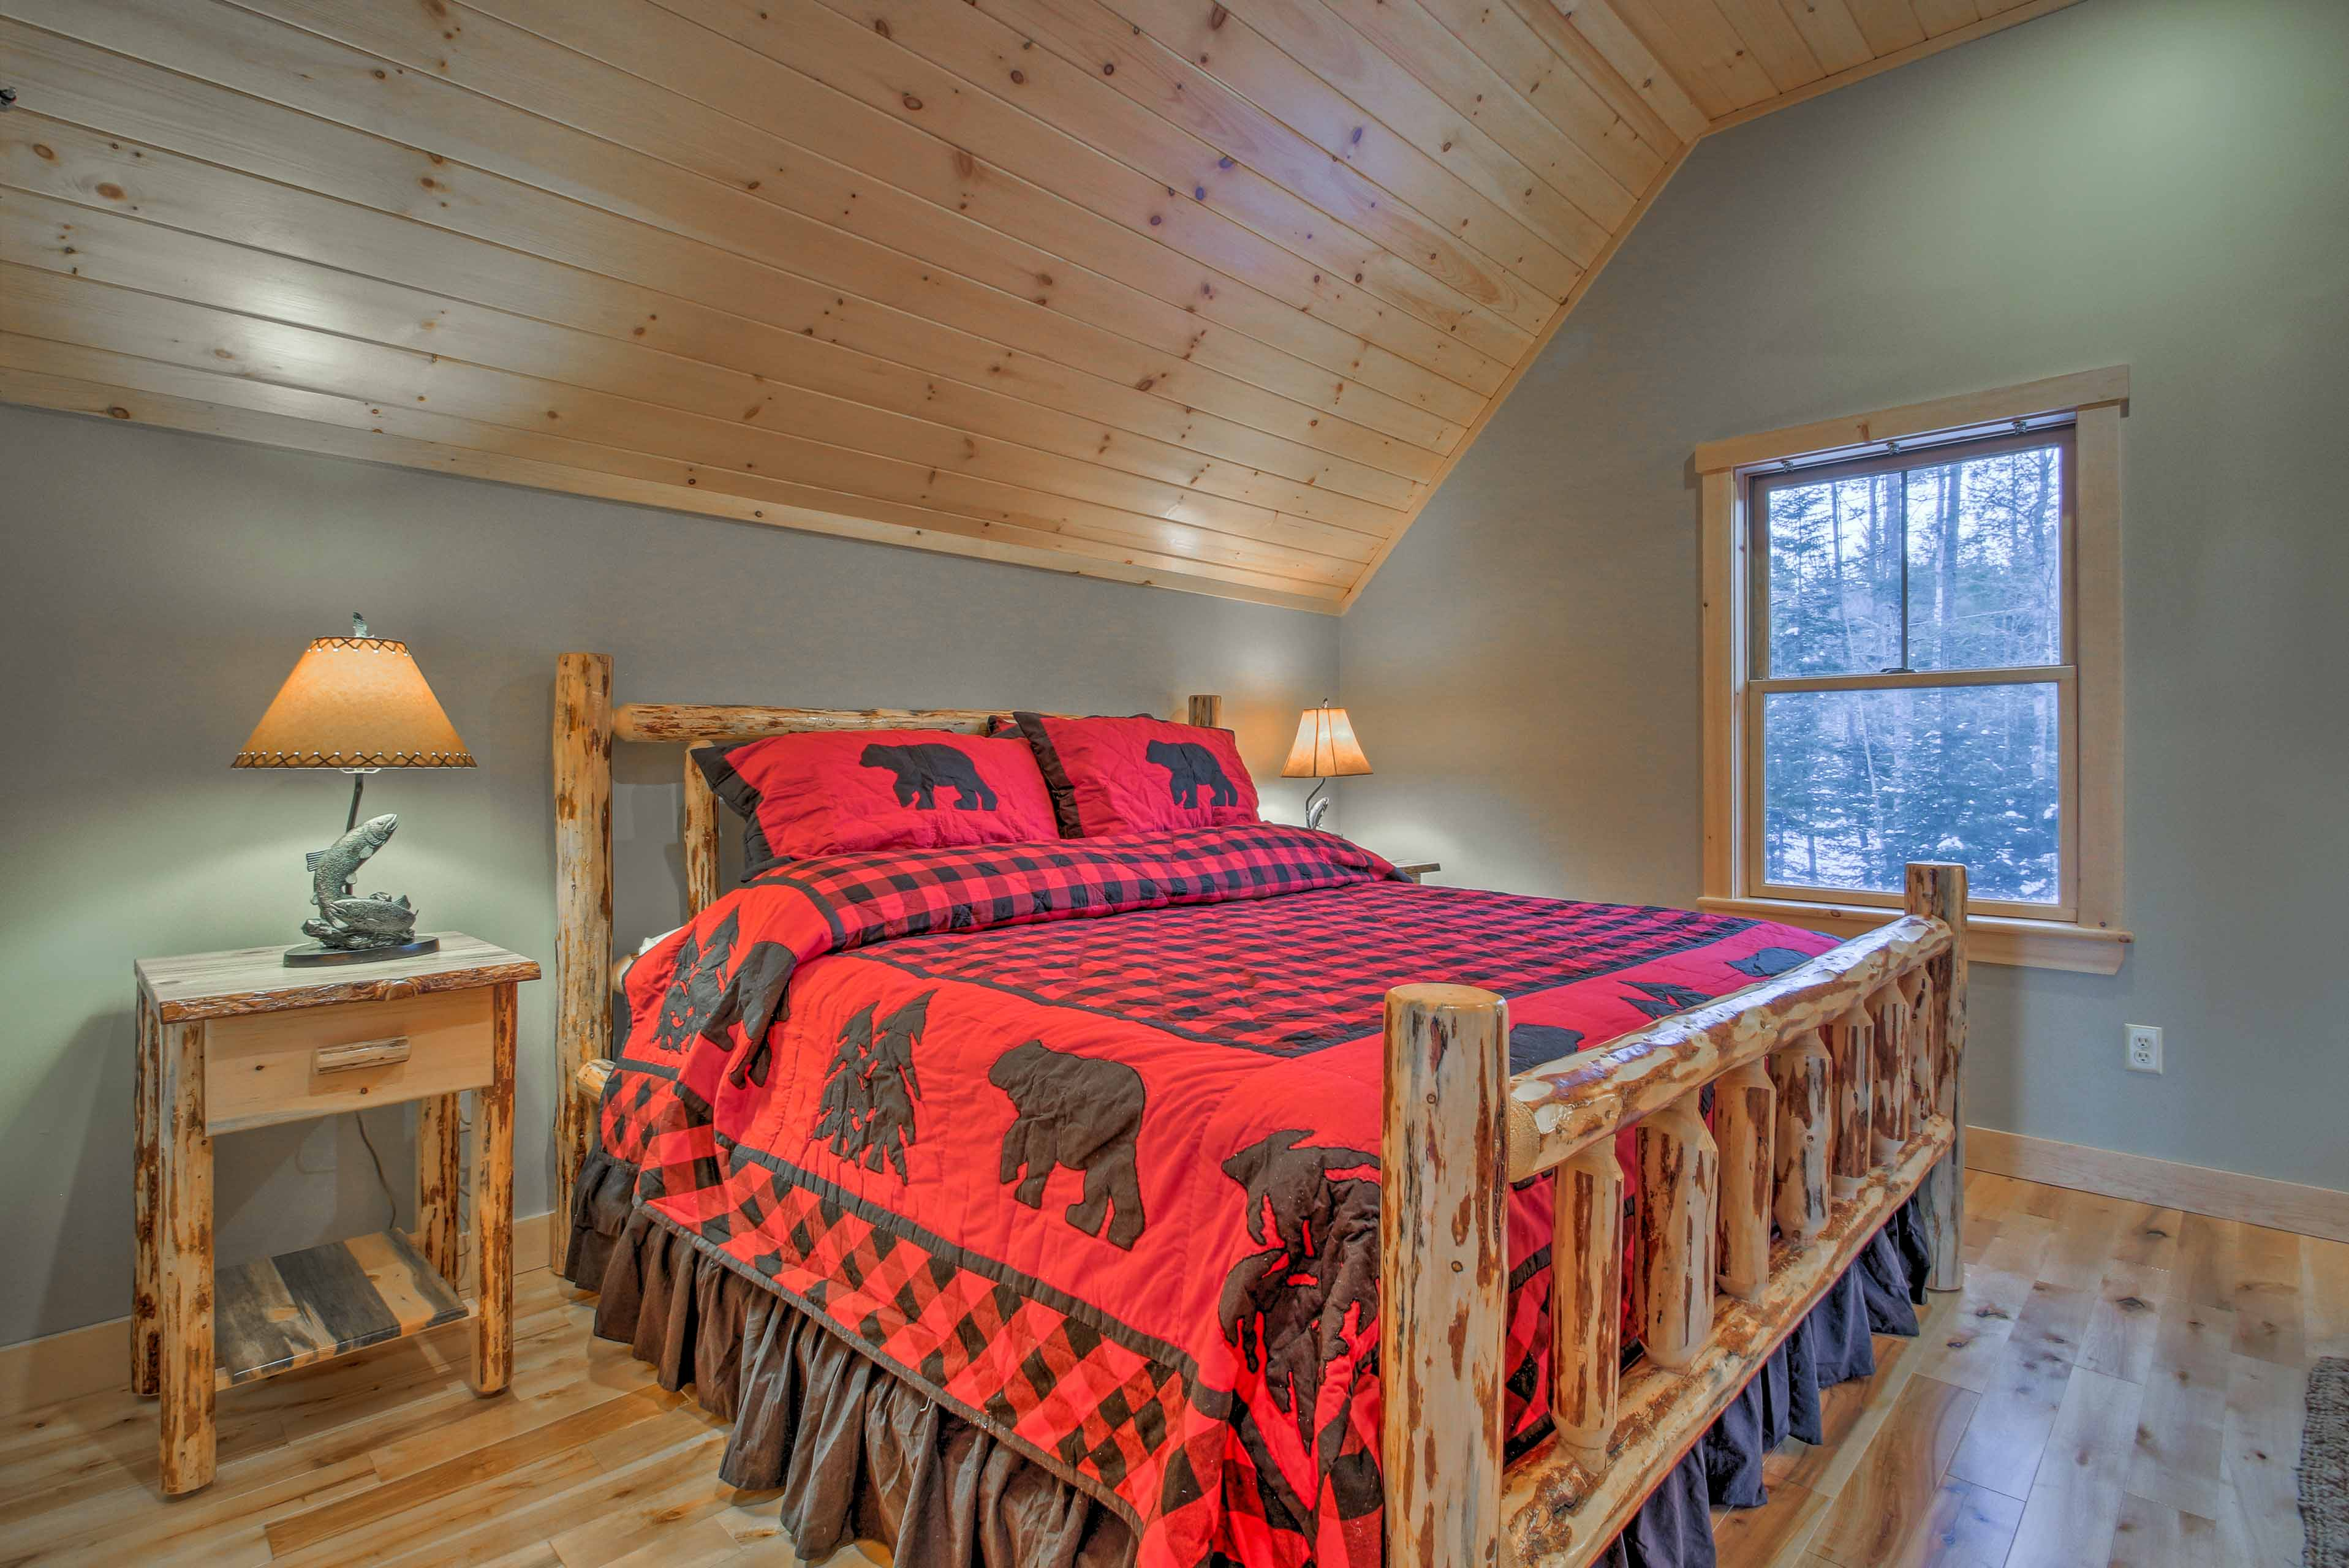 Decorated with Northwoods bedding, this king bed offers peaceful slumbers.